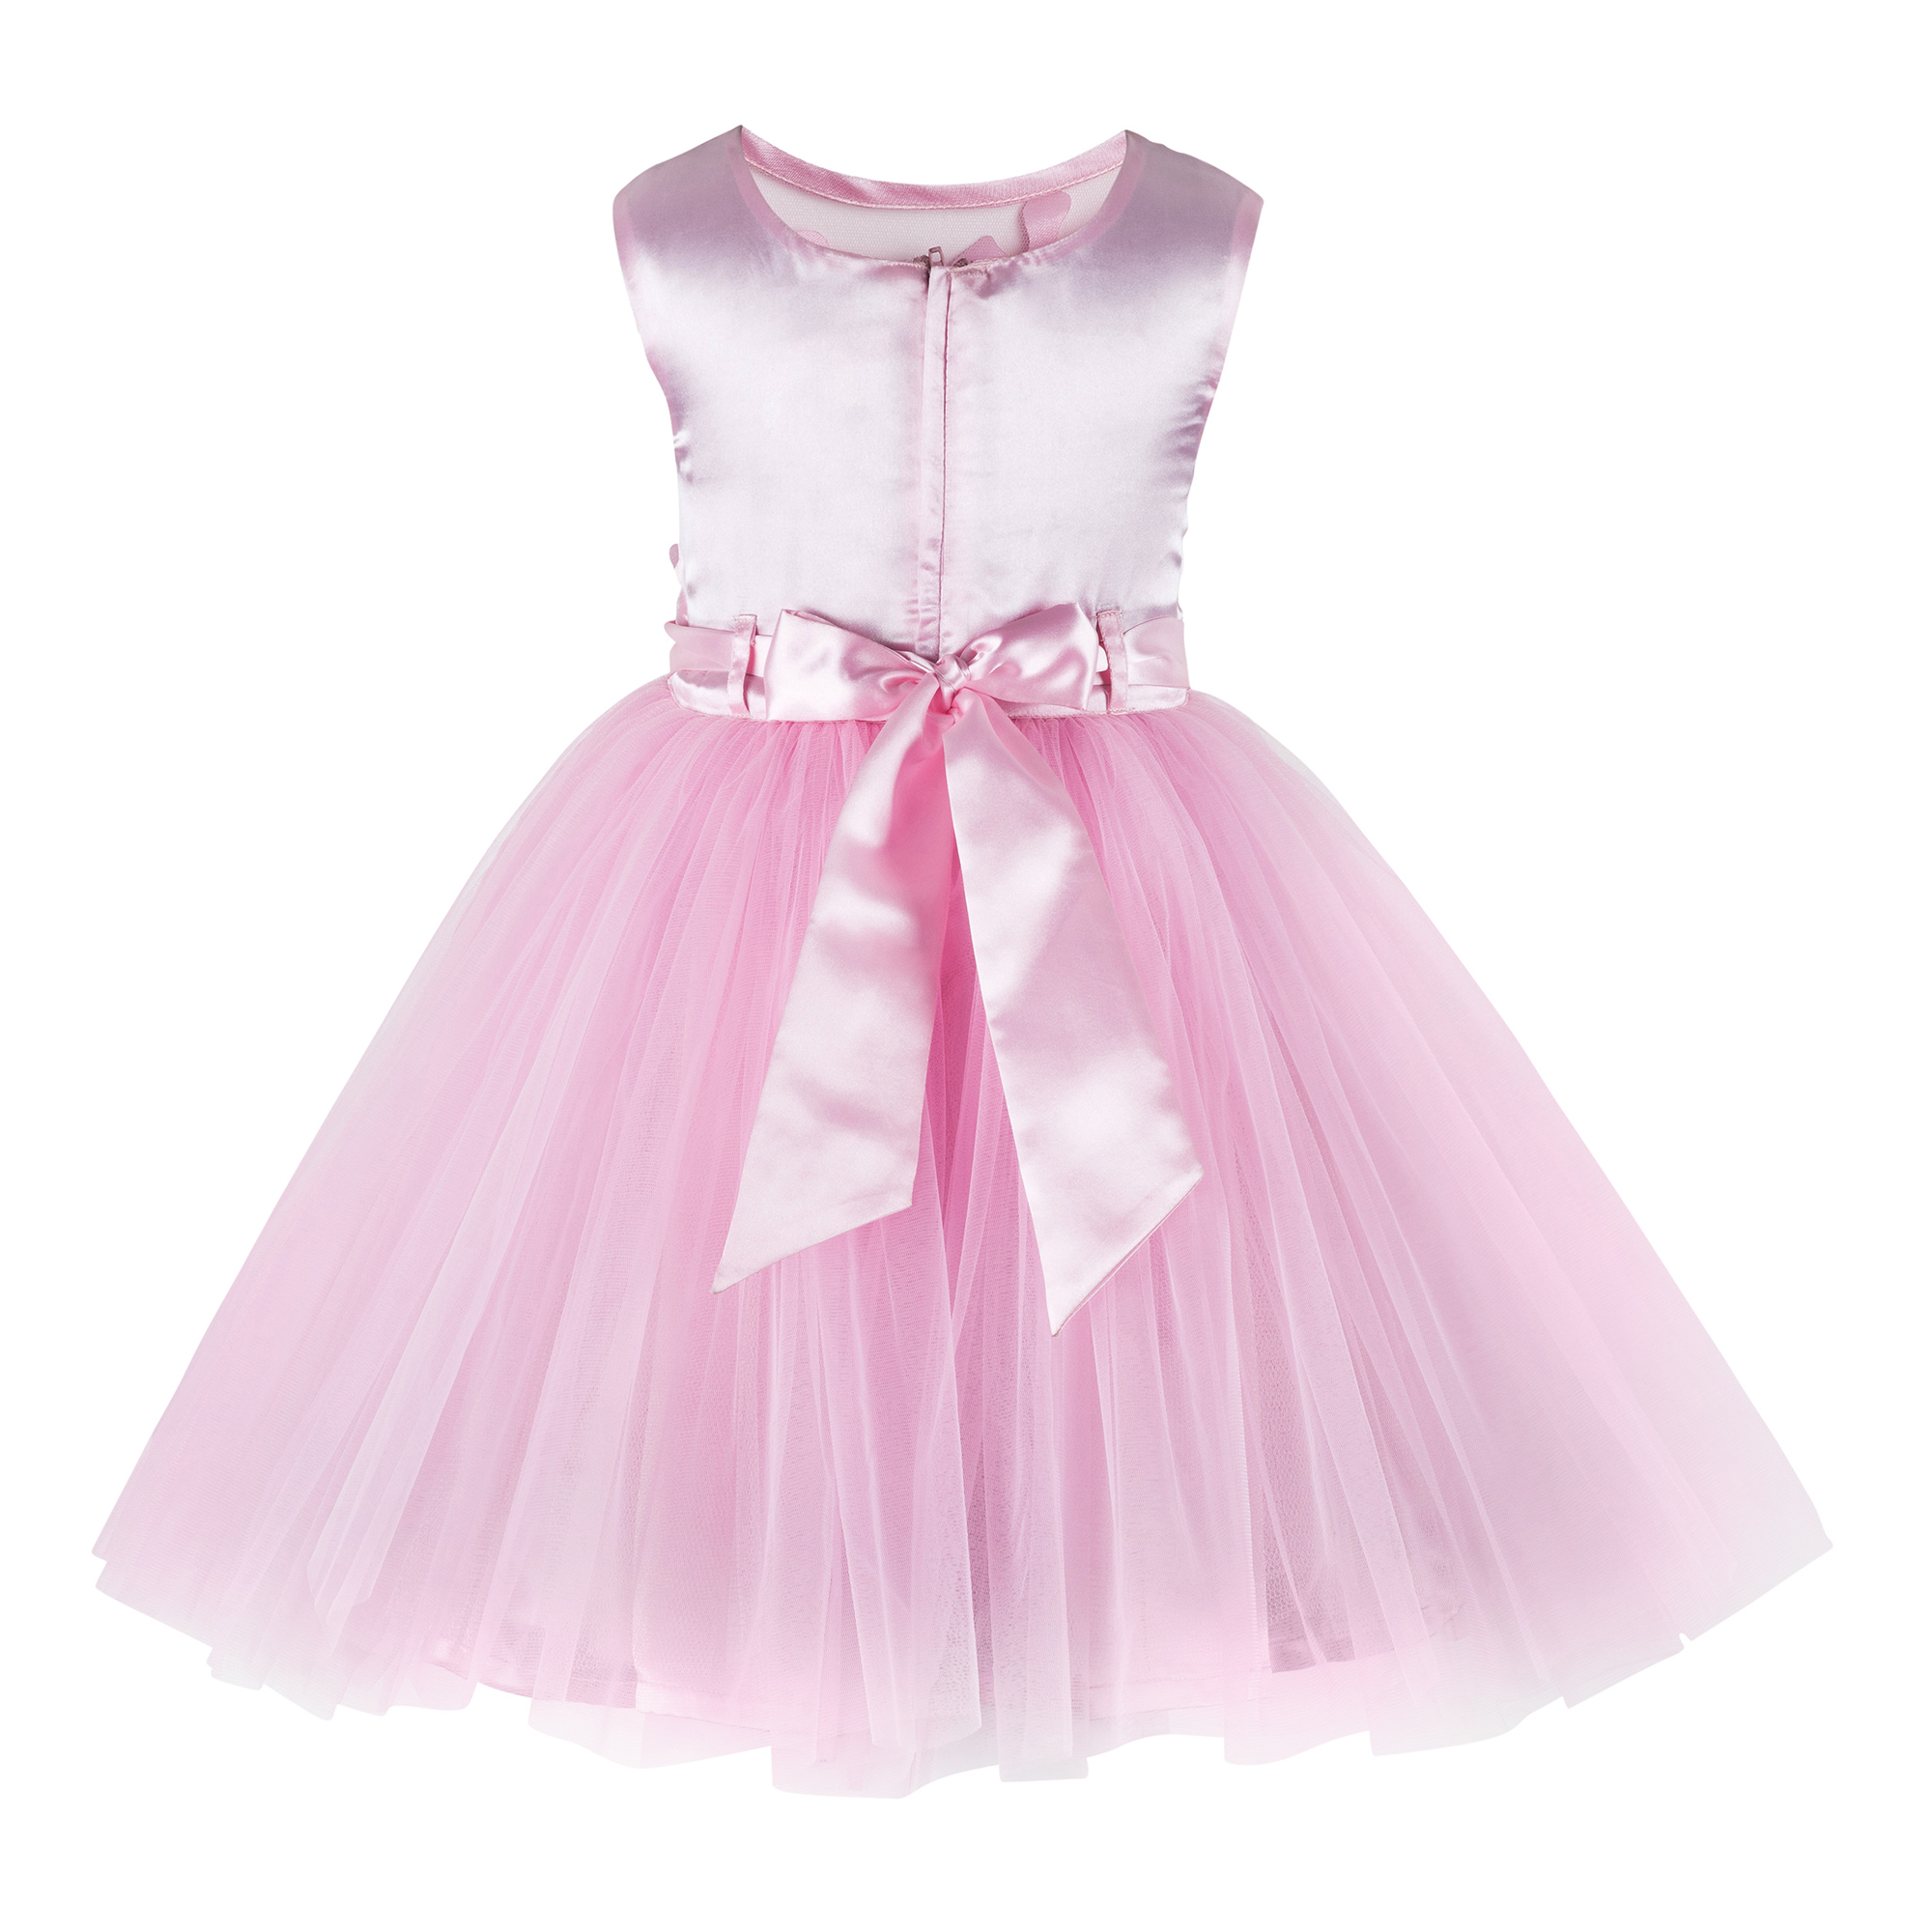 Baby PInk Knee Length Party  Frock